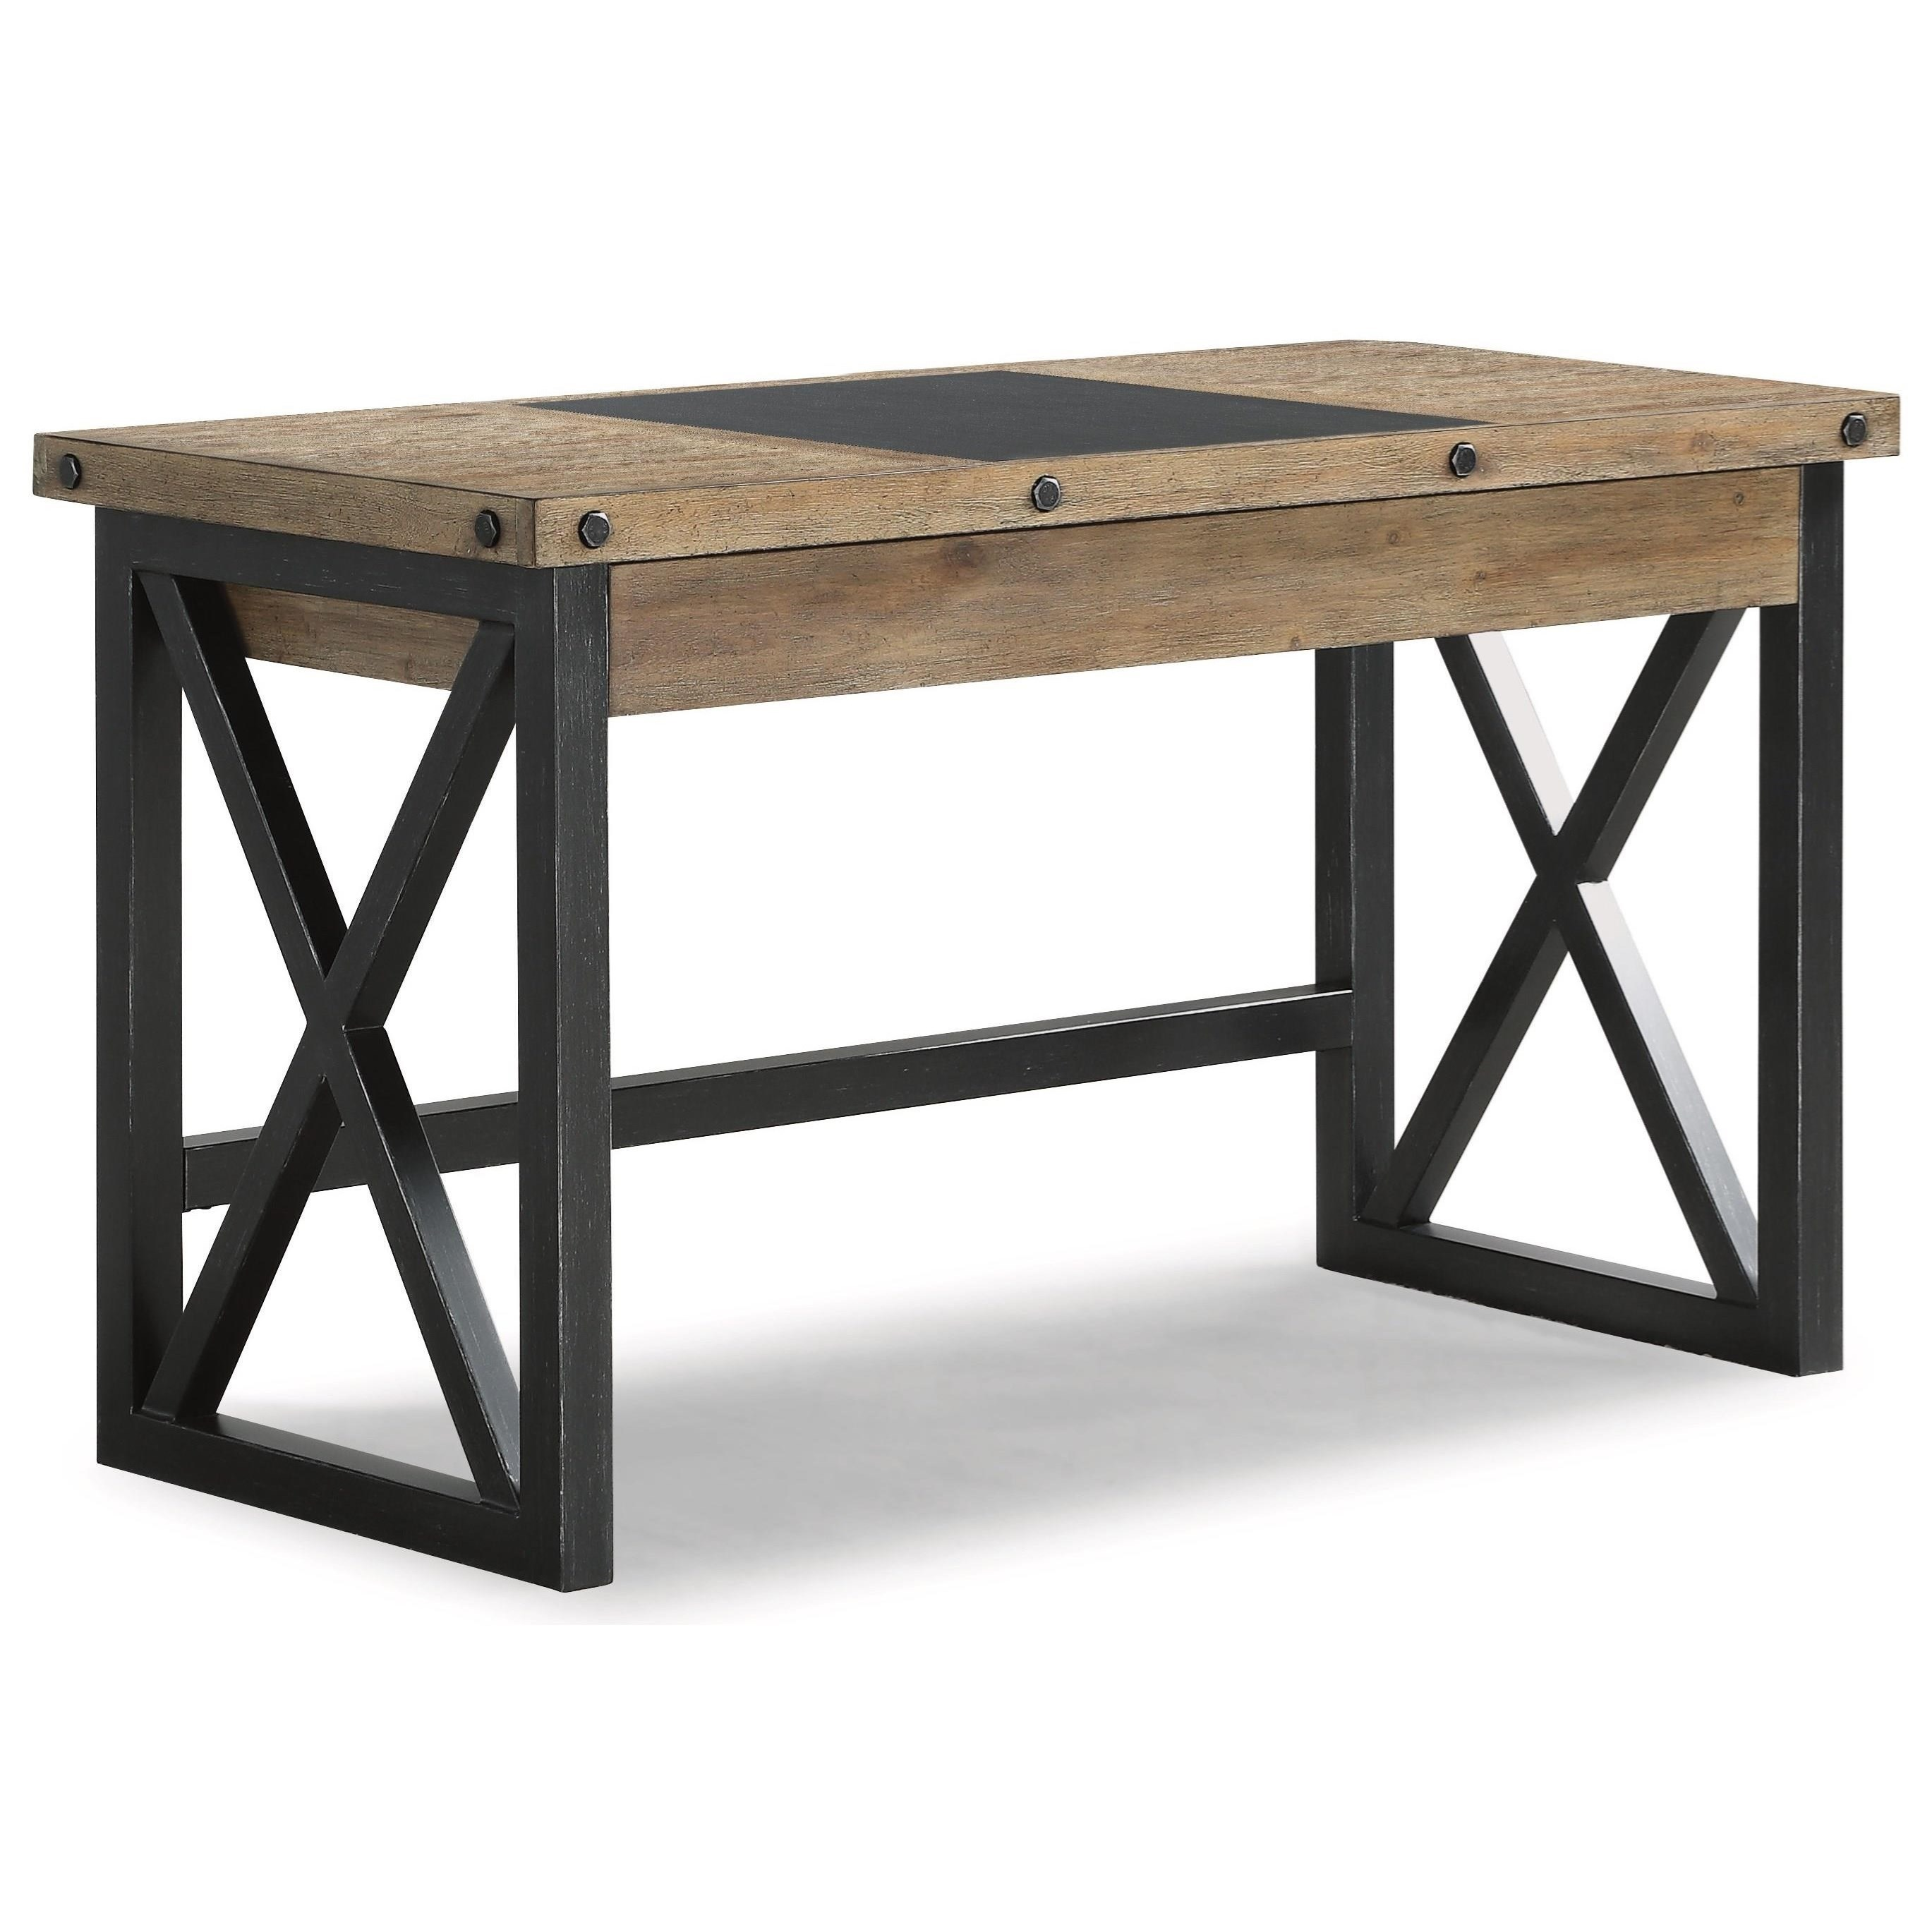 Carpenter Lift-Top Desk by Flexsteel Wynwood Collection at Fashion Furniture